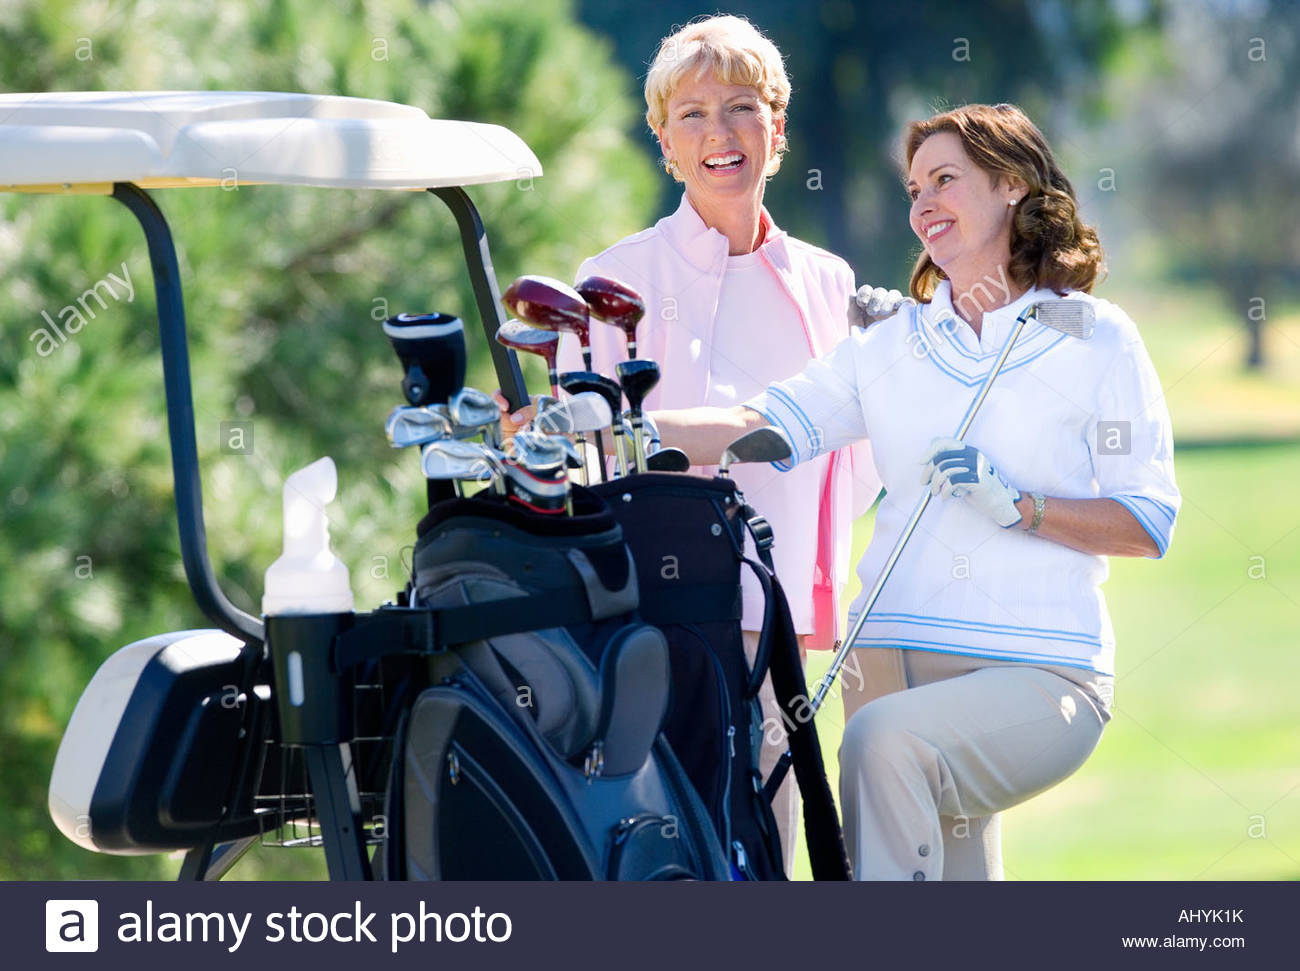 Two mature women standing beside parked golf buggy, playing golf, brunette holding golf club, smiling, portrait - Stock Image